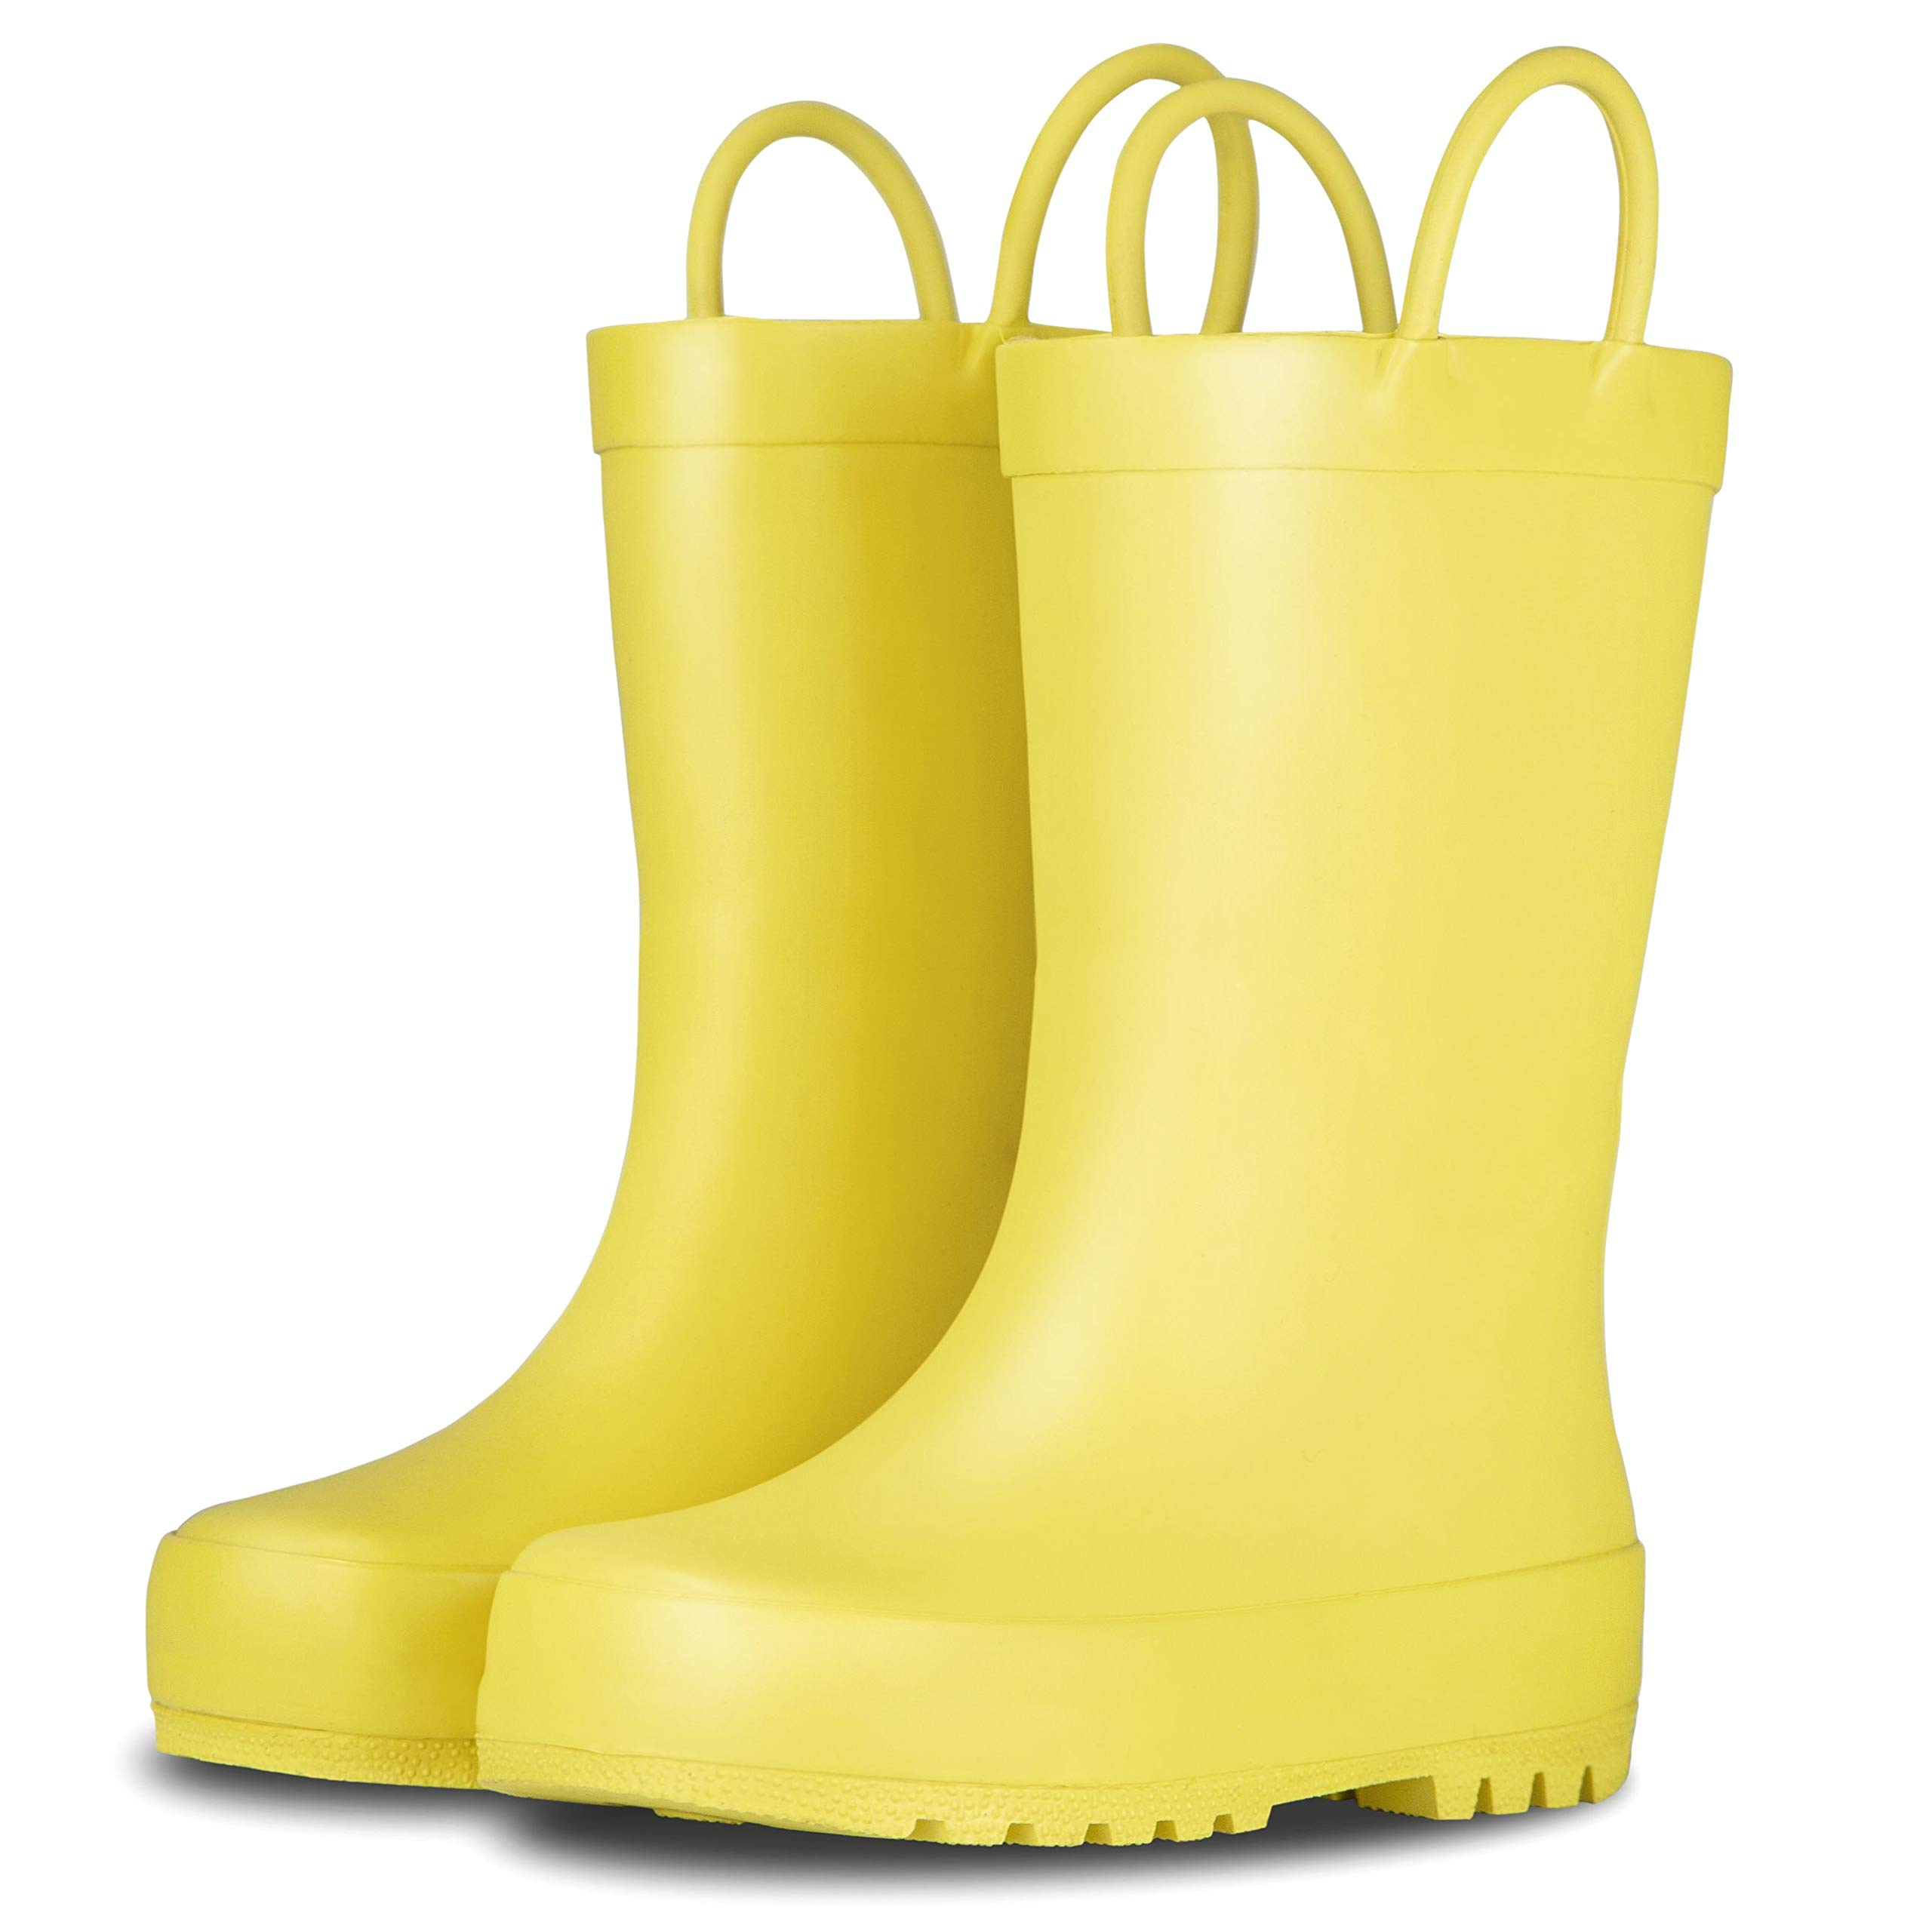 LONECONE Elementary Collection - Matte Rain Boots with Easy-On Handles for Toddlers and Kids, Sunshine Yellow, Toddler 7